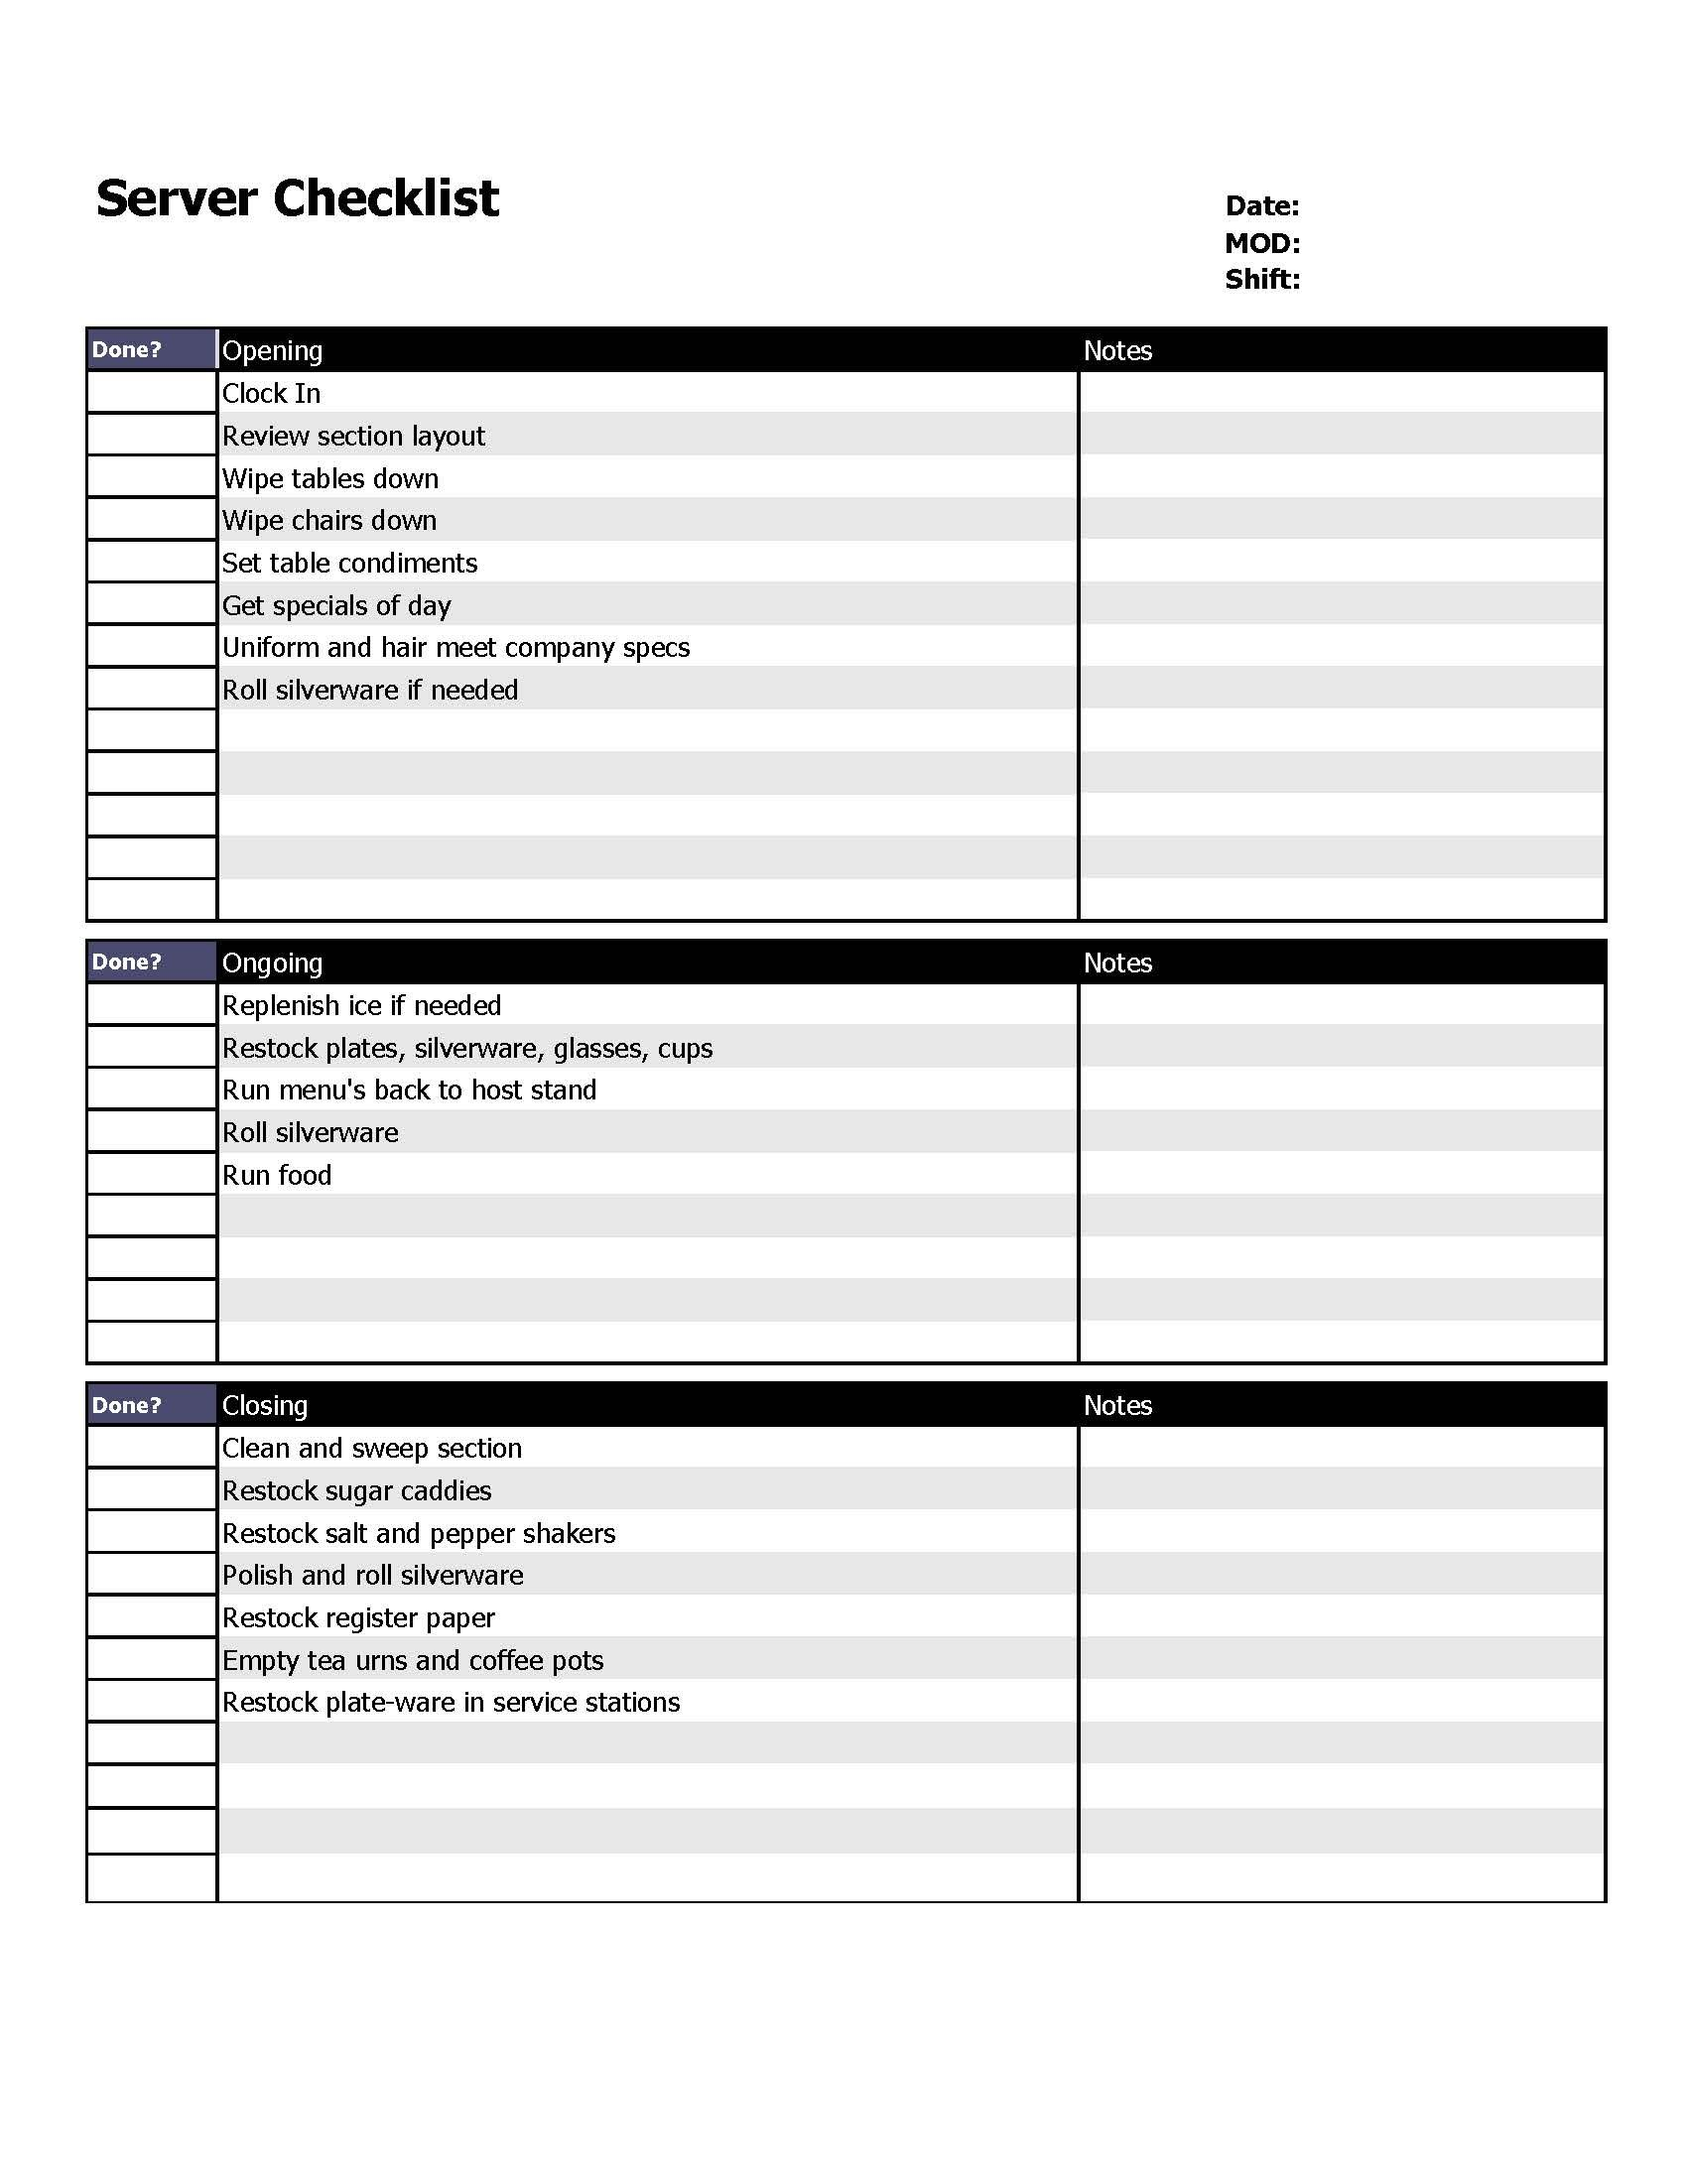 Restaurant server checklist form organizing pinterest restaurant server checklist form accmission Images